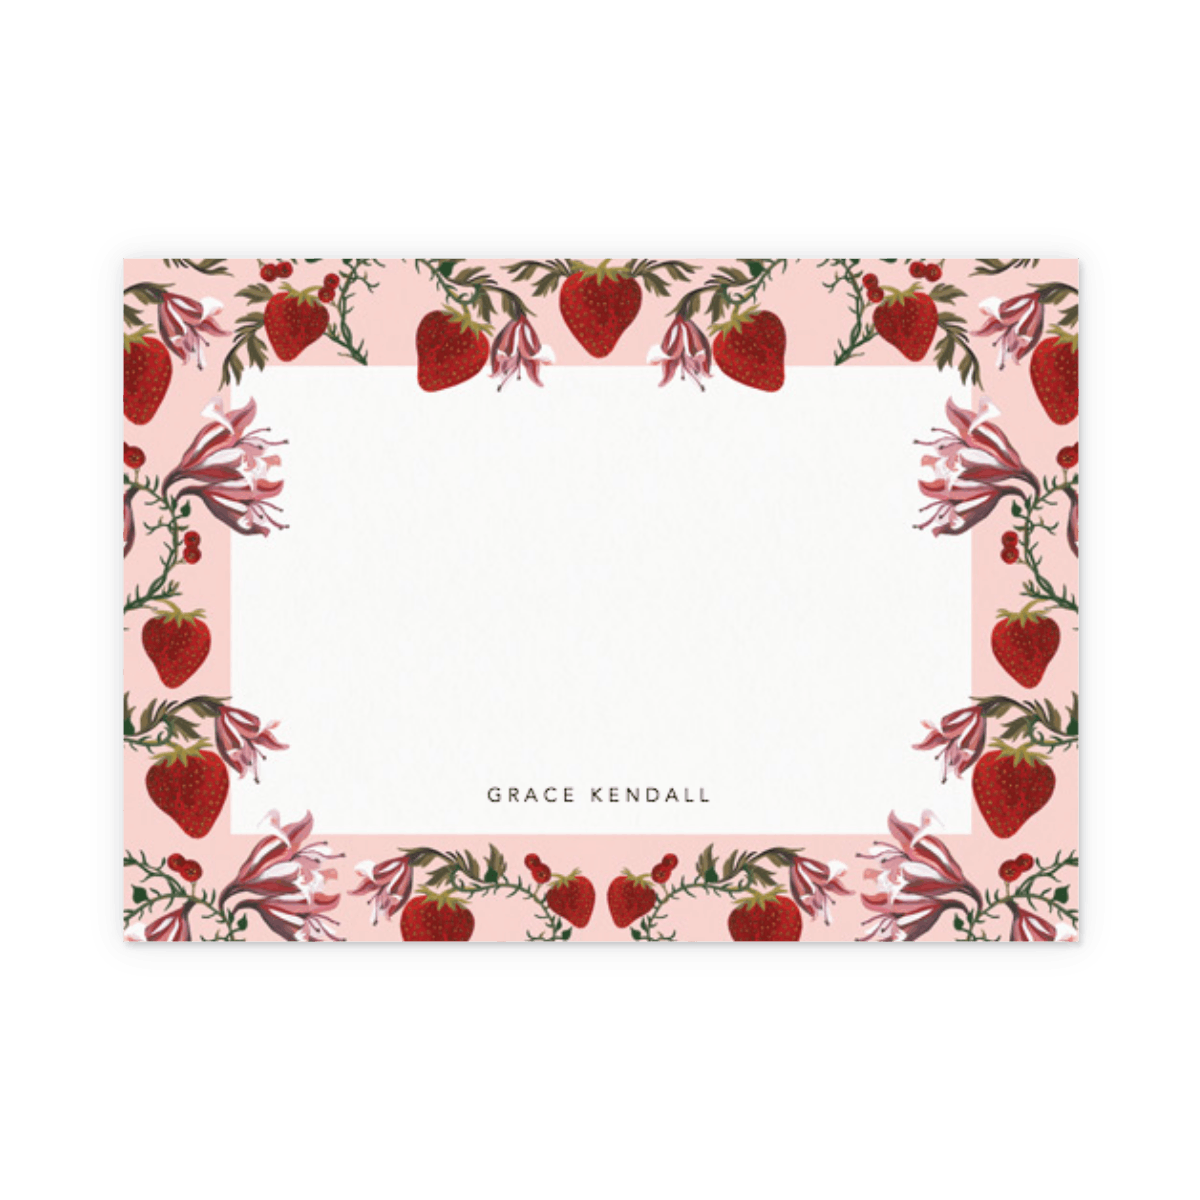 Https%3a%2f%2fwww.papier.com%2fproduct image%2f45236%2f10%2fstrawberry floral 11228 front 1559066963.png?ixlib=rb 1.1